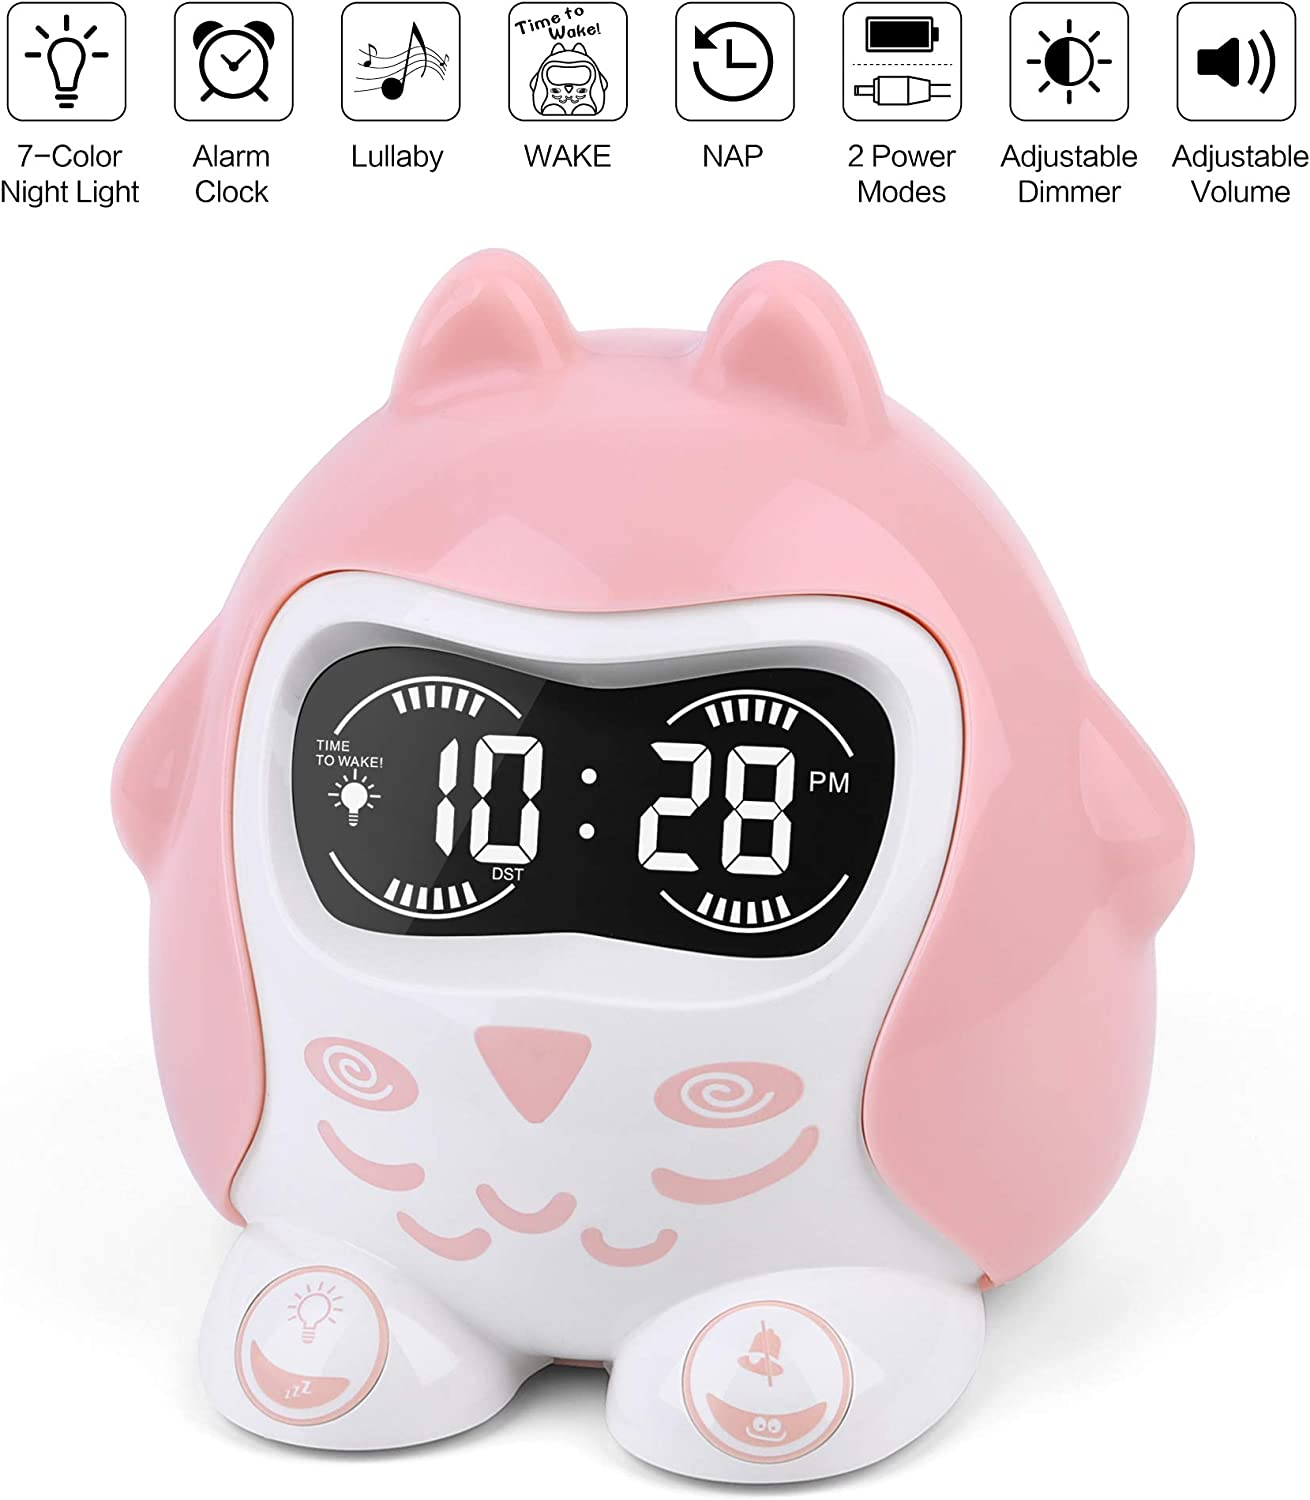 White Noise Sound Machine, Kids Sleep Trainer Time to Wake Alarm Clock, Baby Sleep Soother with 9 Sounds Lullabies, Portable Sound Therapy 7 Colored Night Light, Timer, NAP, Plug In Or Battery Powered